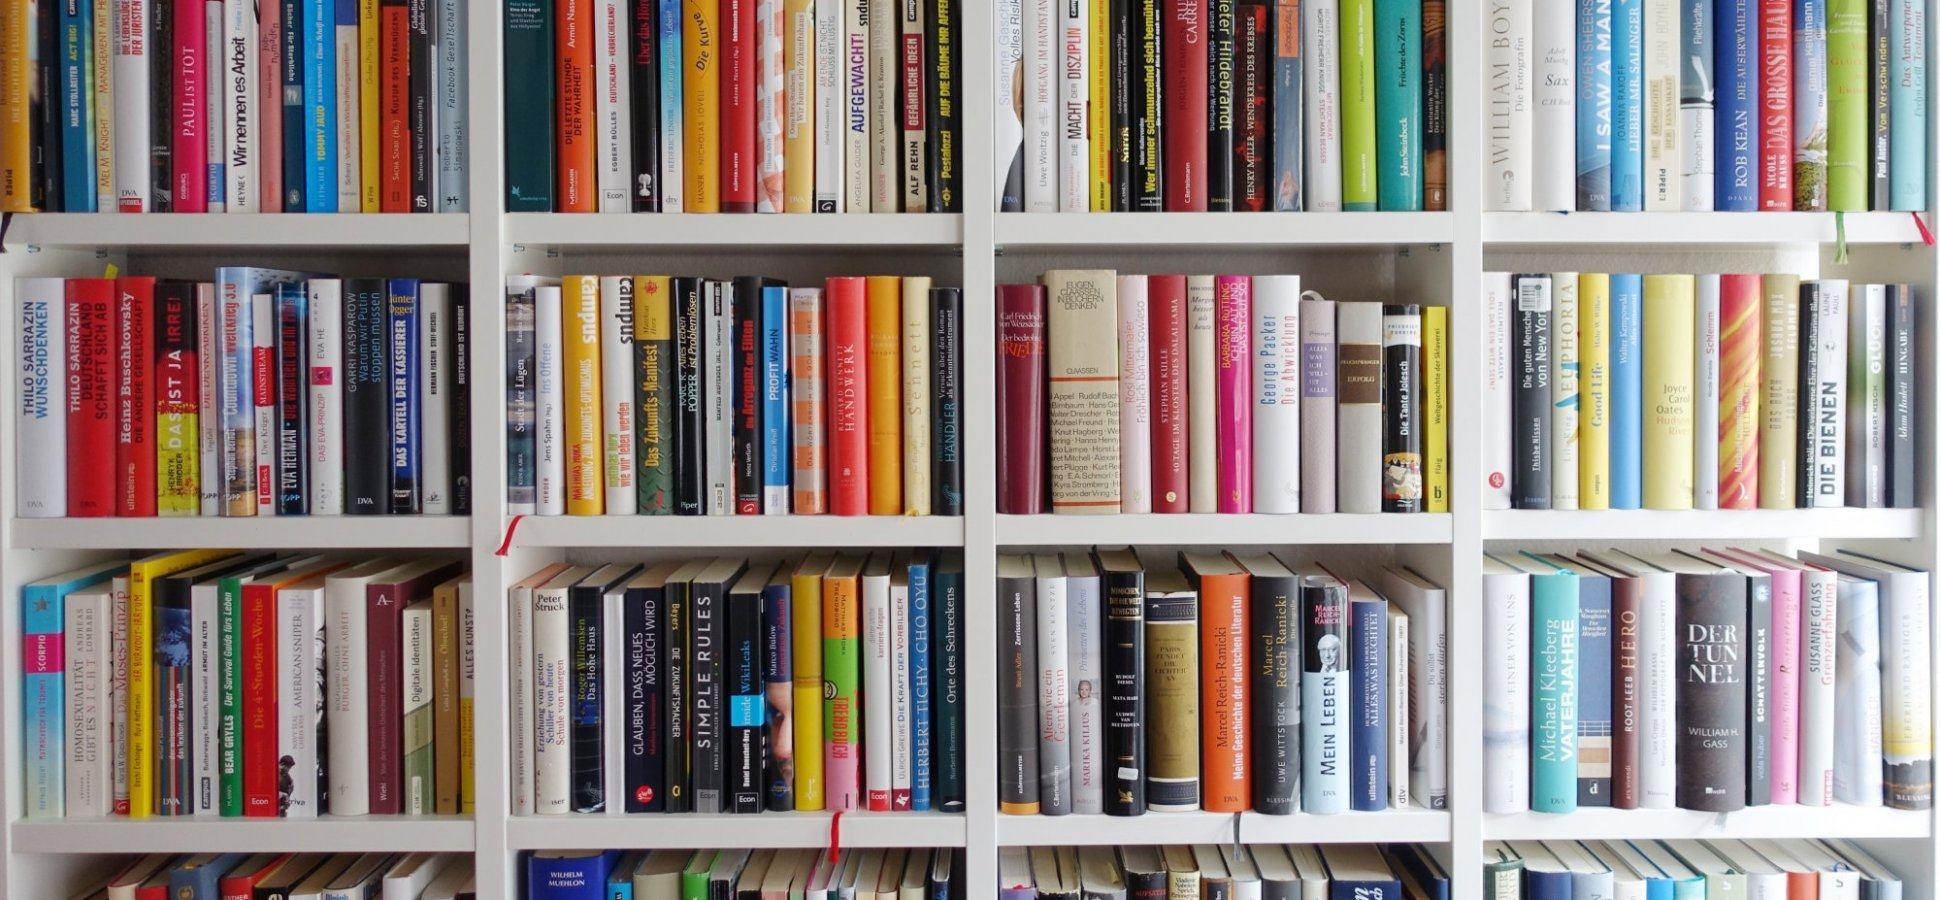 23 Inspiring Books Everyone Who Wants to Succeed Should Read